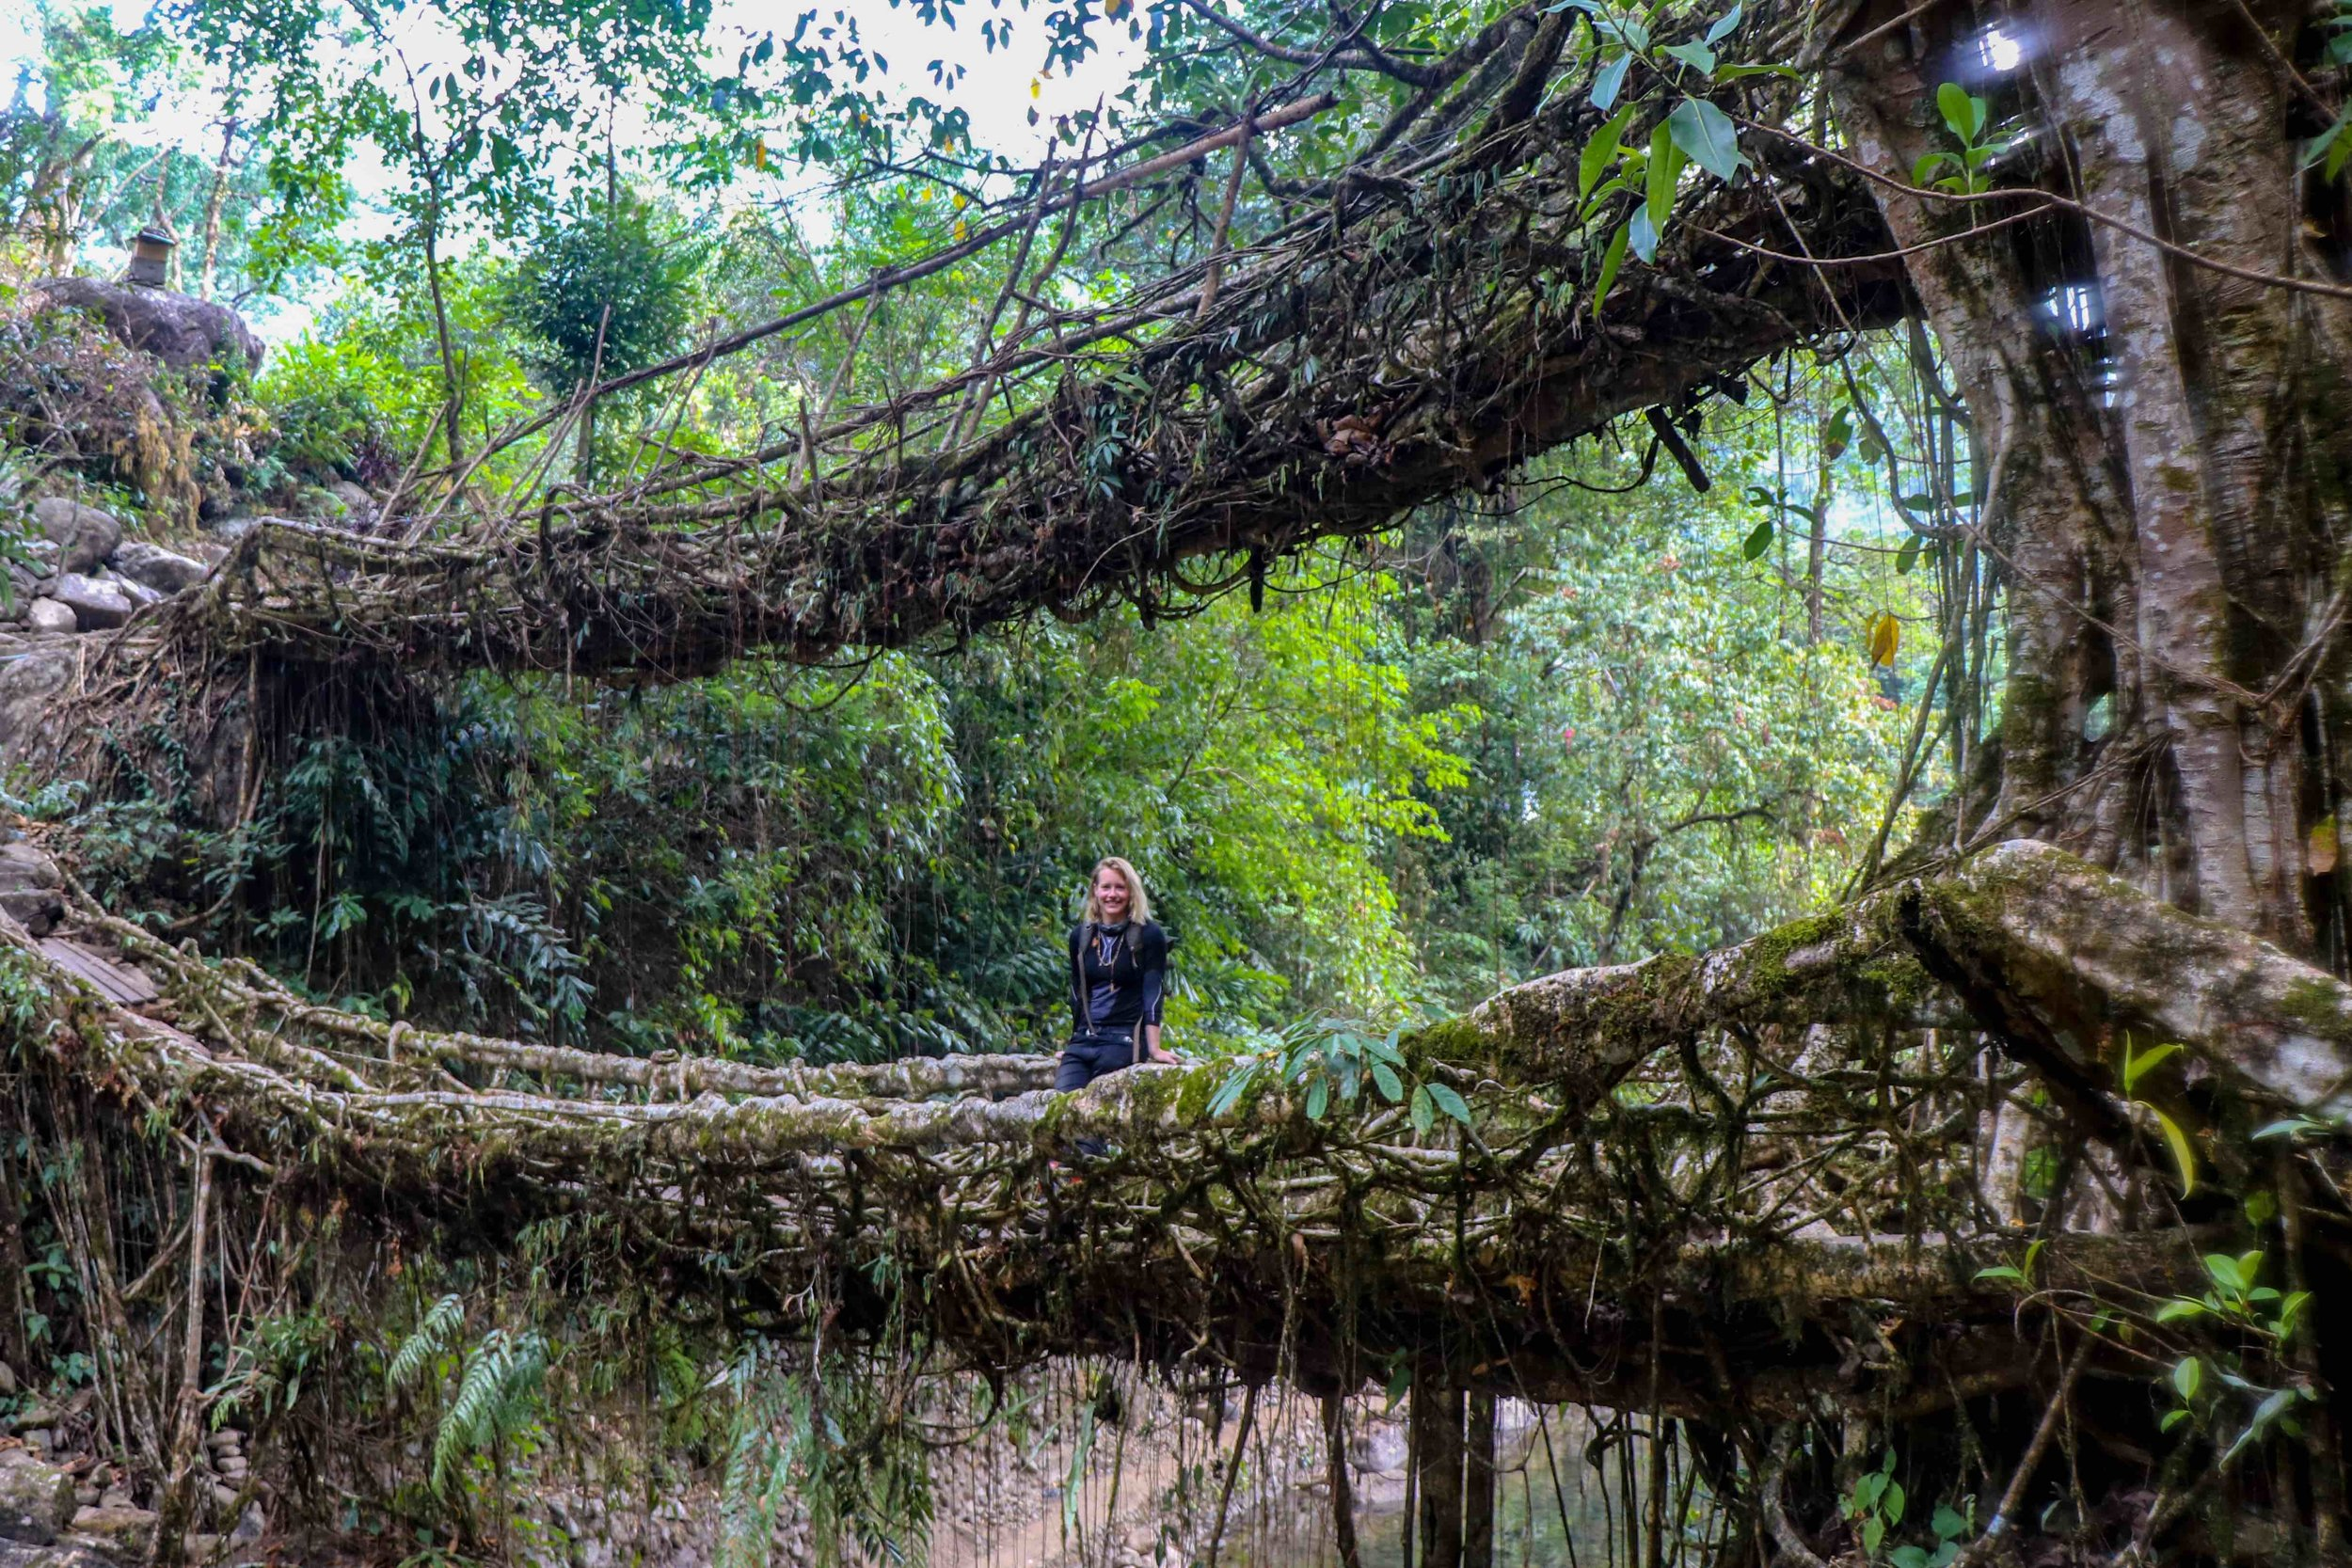 Double Decker Living Root Bridge in Cherrapunjee, India - Meghalaya, North Eastern States.